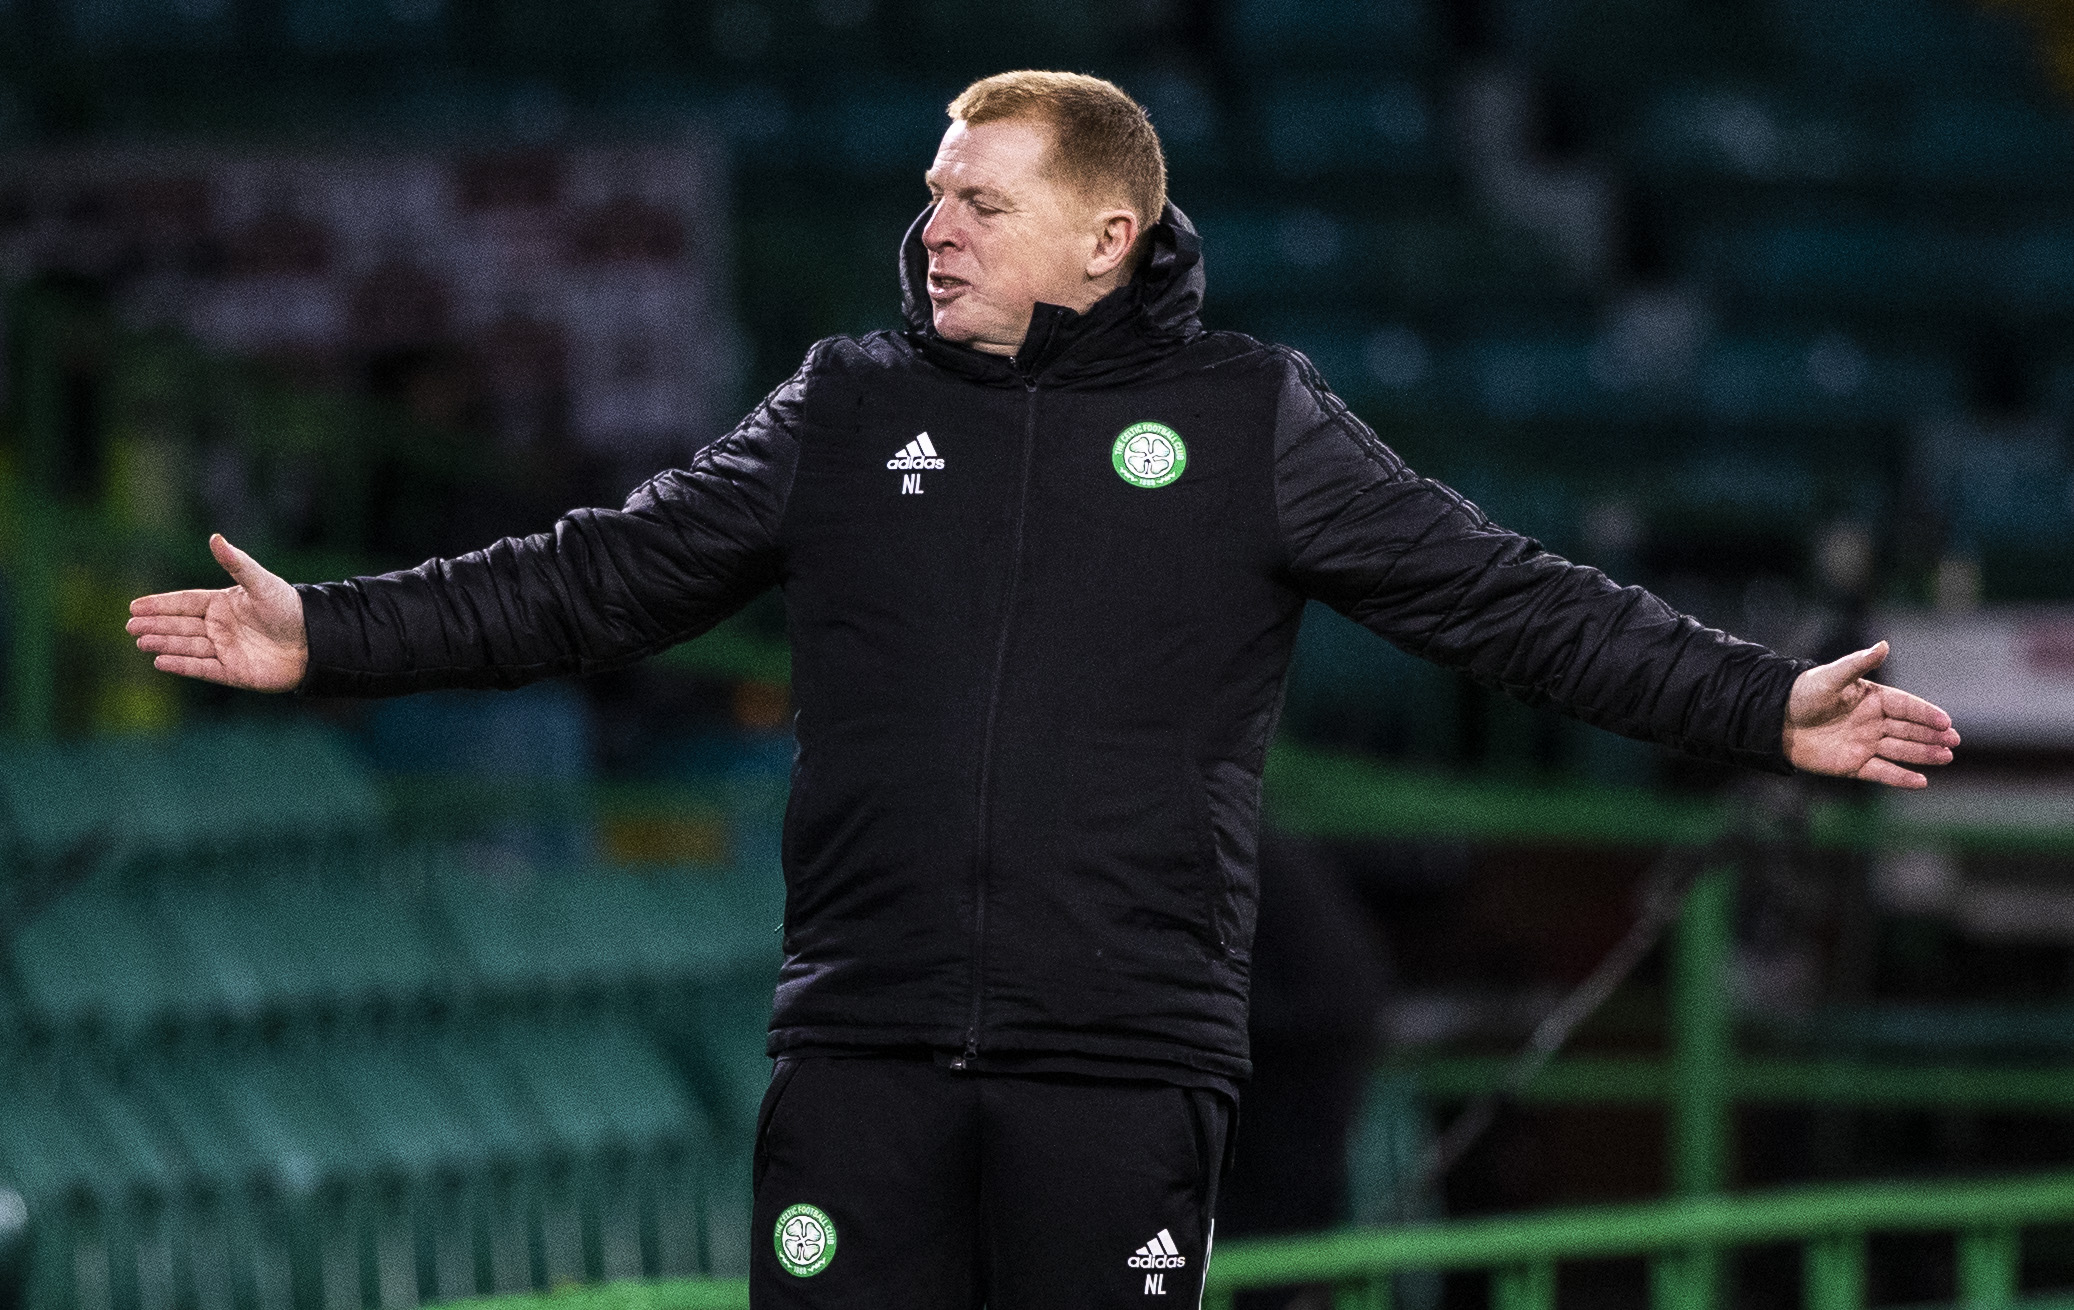 How Celtic manager Neil Lennon compares to Deila, Strachan and Mowbray